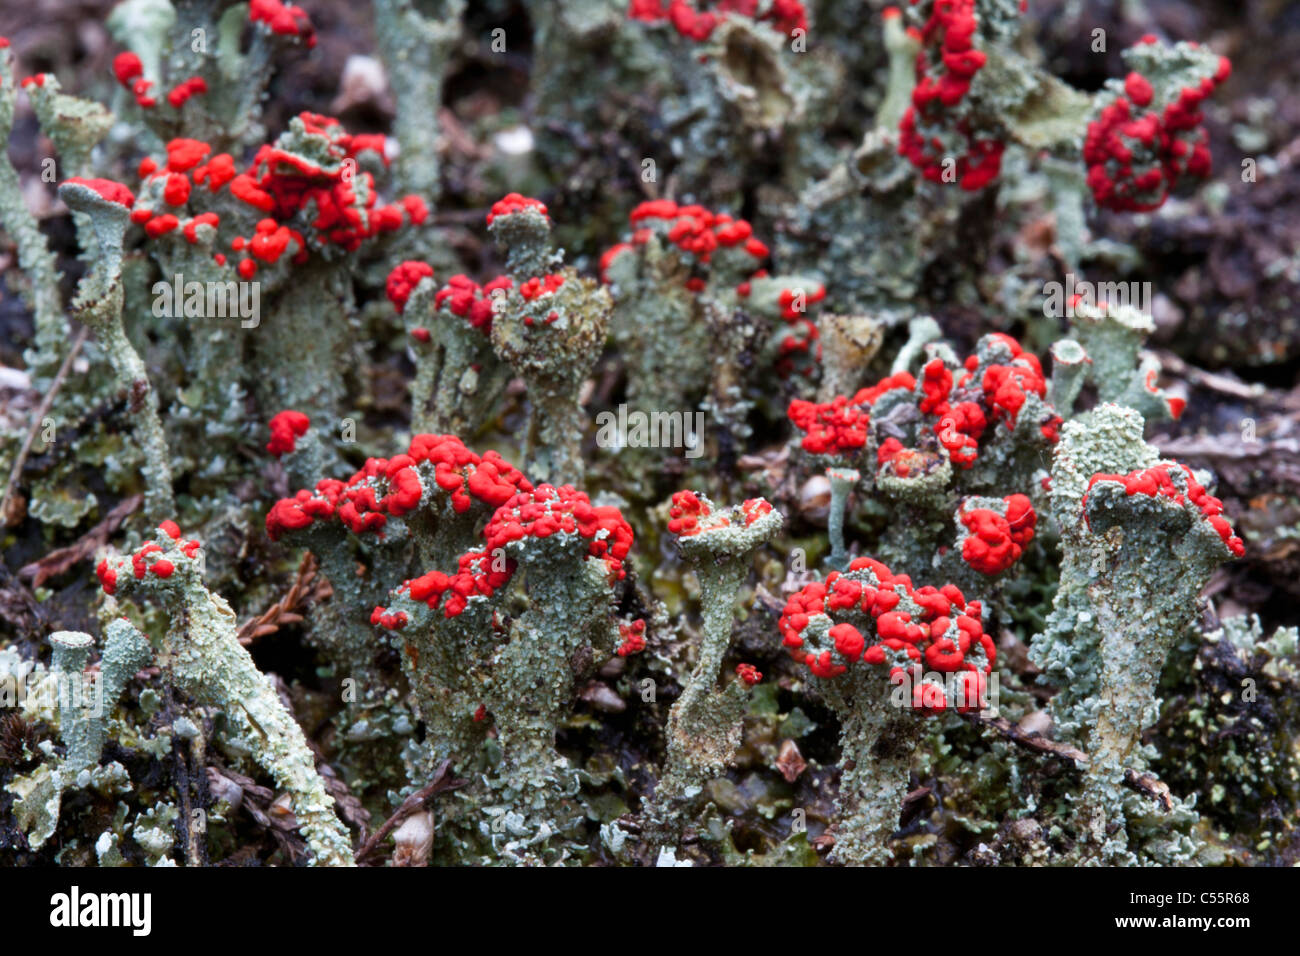 The Netherlands, Loon op Zand, National Park De Loonse en Drunense Duinen. Typical plants. - Stock Image